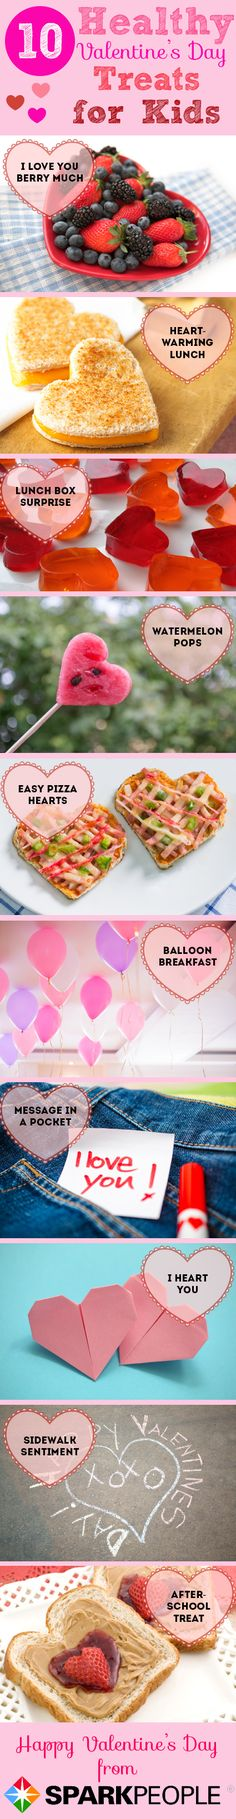 Kid-Friendly Valentine's Day Surprises--that are healthy #valentine